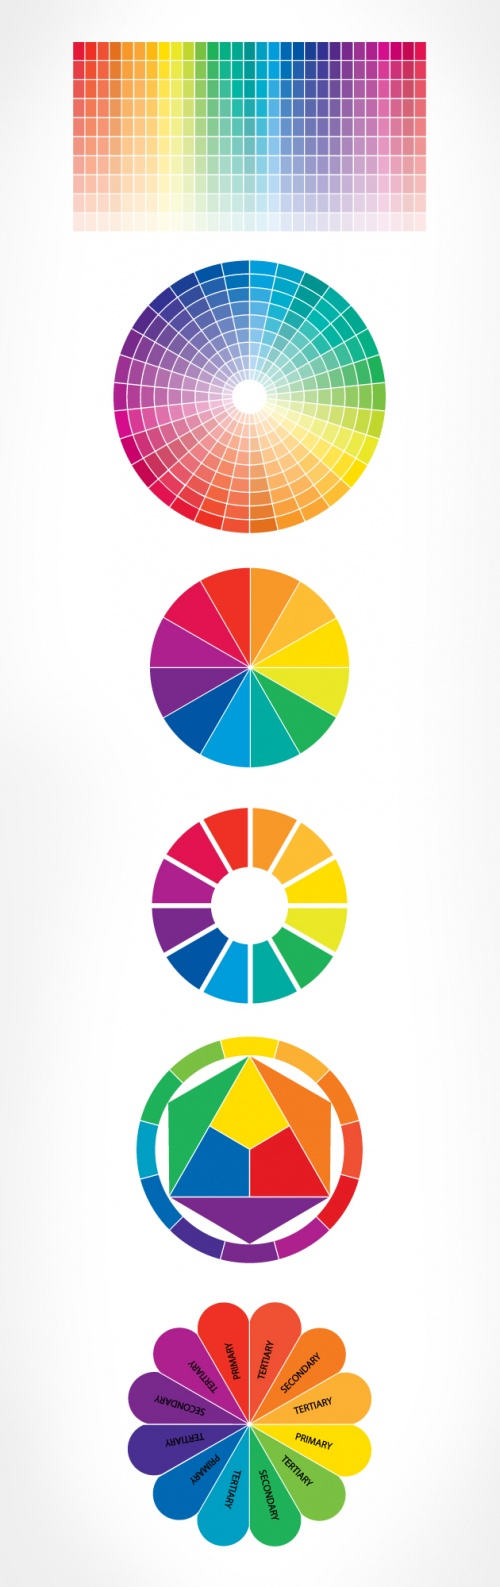 Designtnt - Color Wheel Vector Set